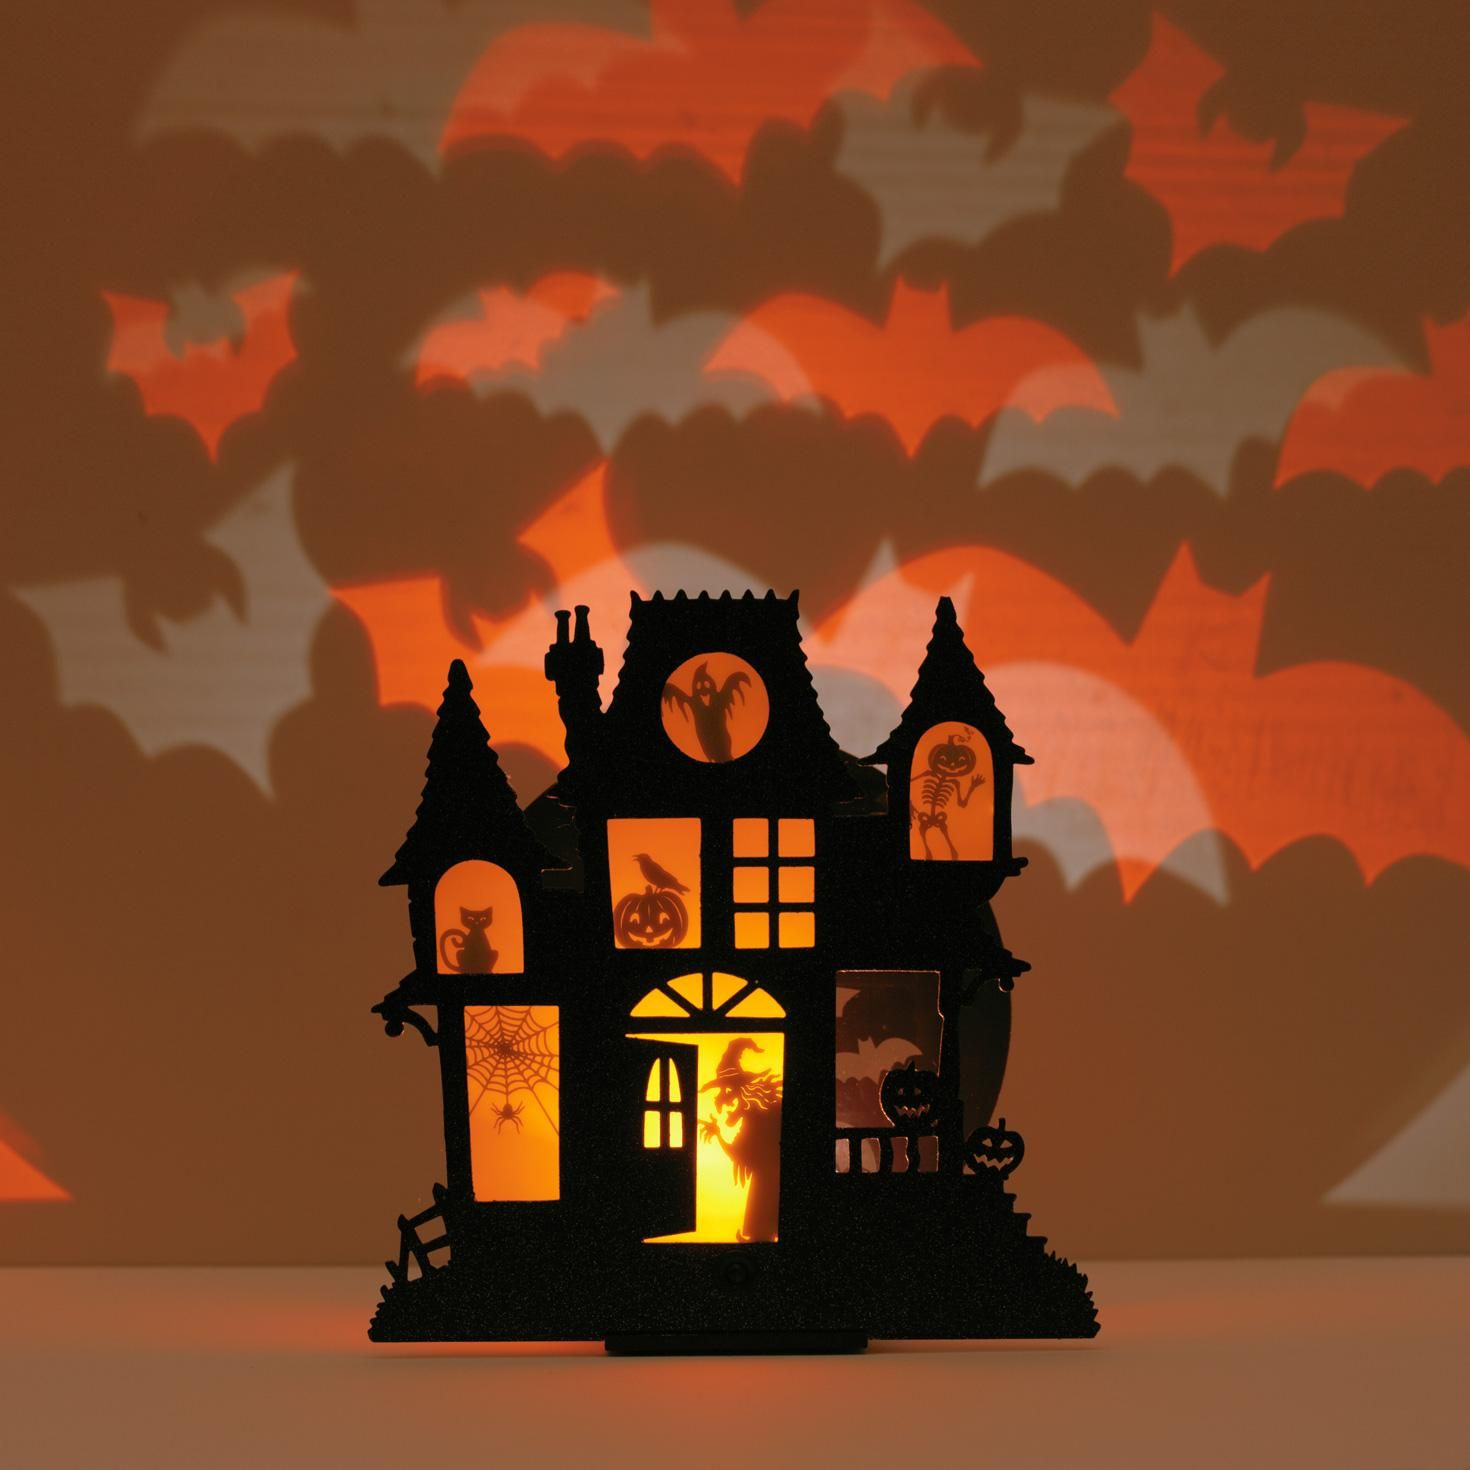 haunted house shadowcaster halloween gift hallmark - Hallmark Halloween Decorations